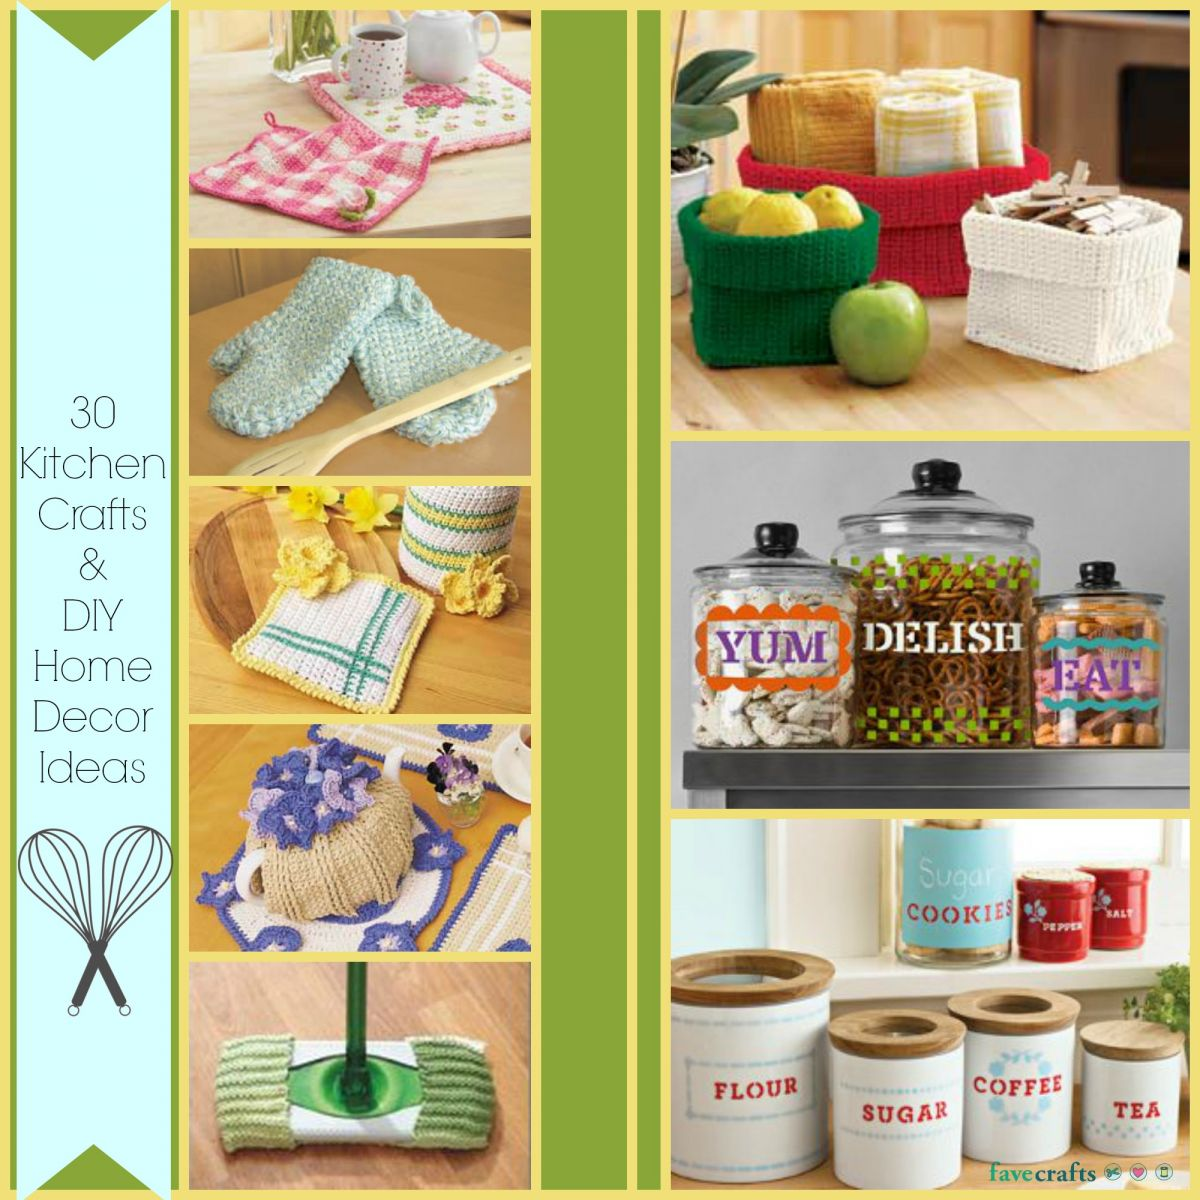 30 kitchen crafts and diy home decor ideas - Home Decor Craft Ideas